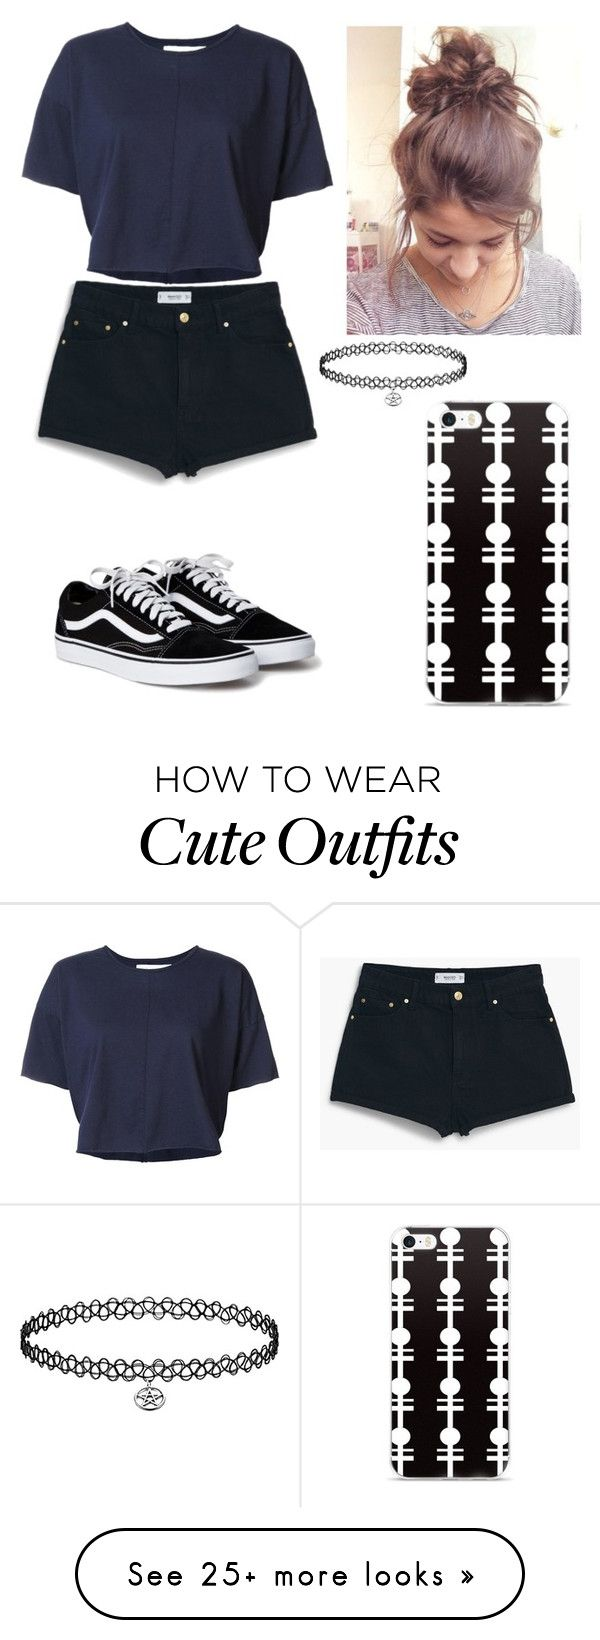 """Just a casual outfit"" by lesleyrandom16 on Polyvore featuring daniel patrick and MANGO"